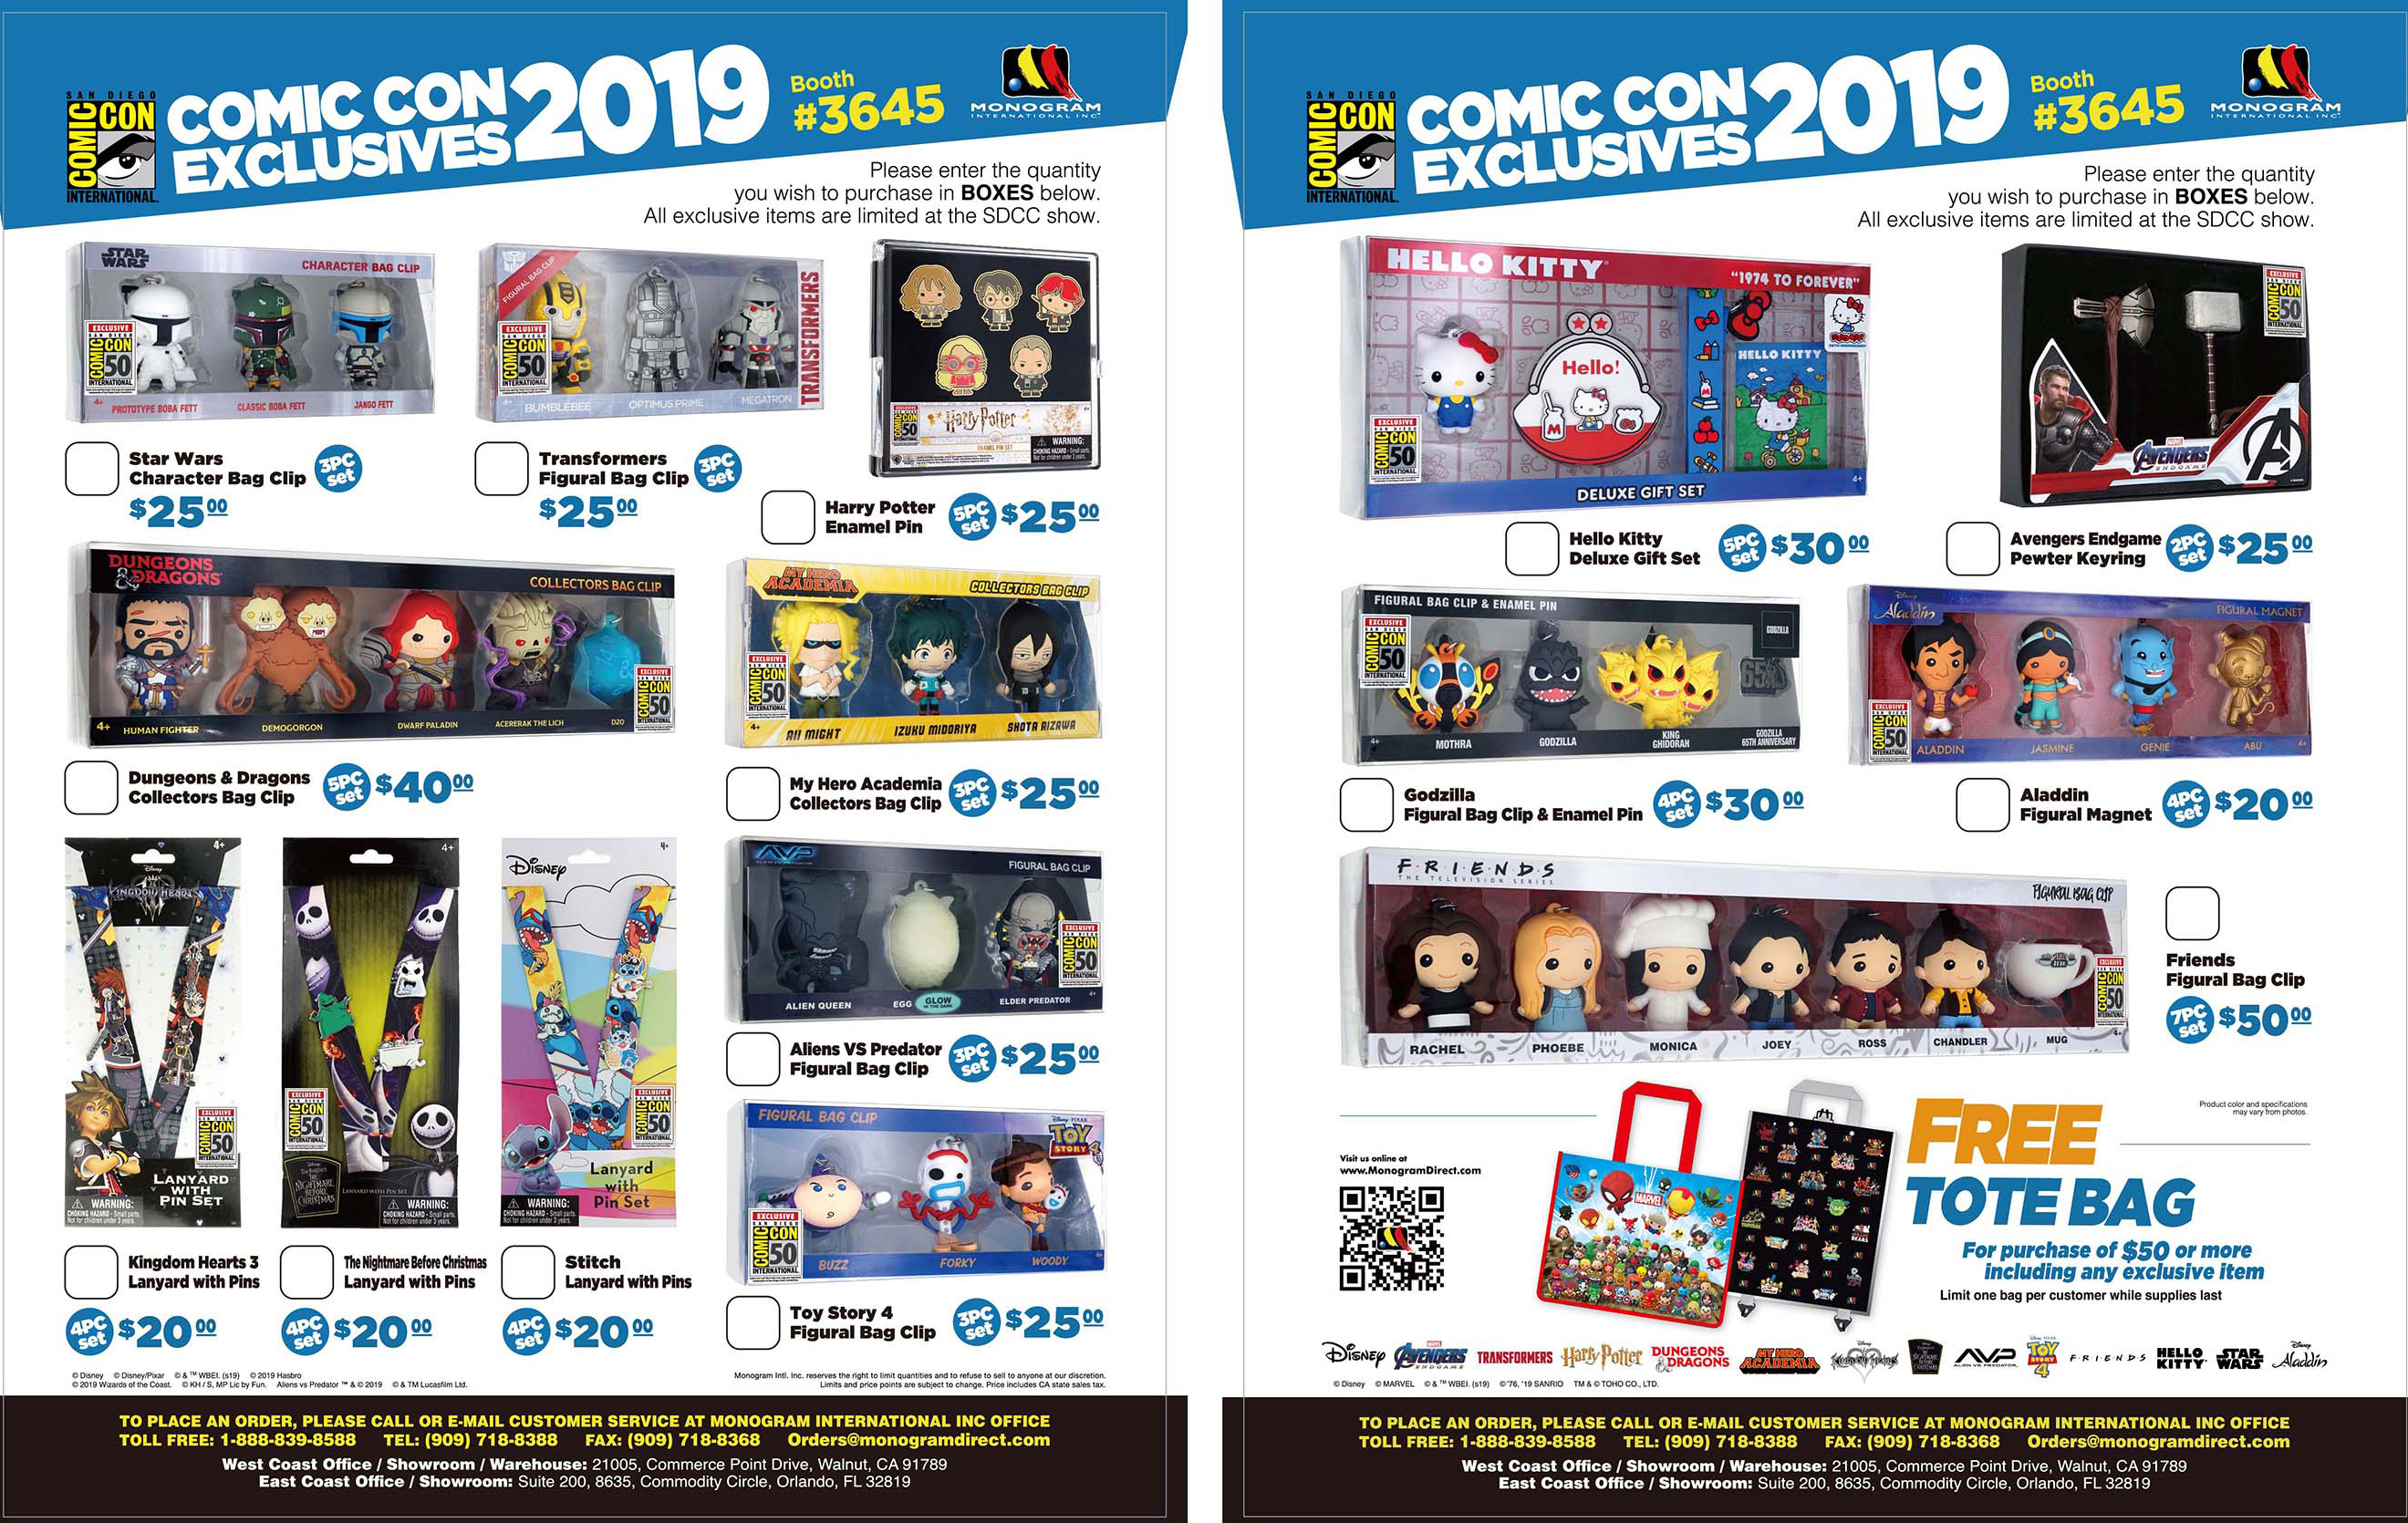 News - SDCC 2019 - Booth #3645 - An Early Look at our